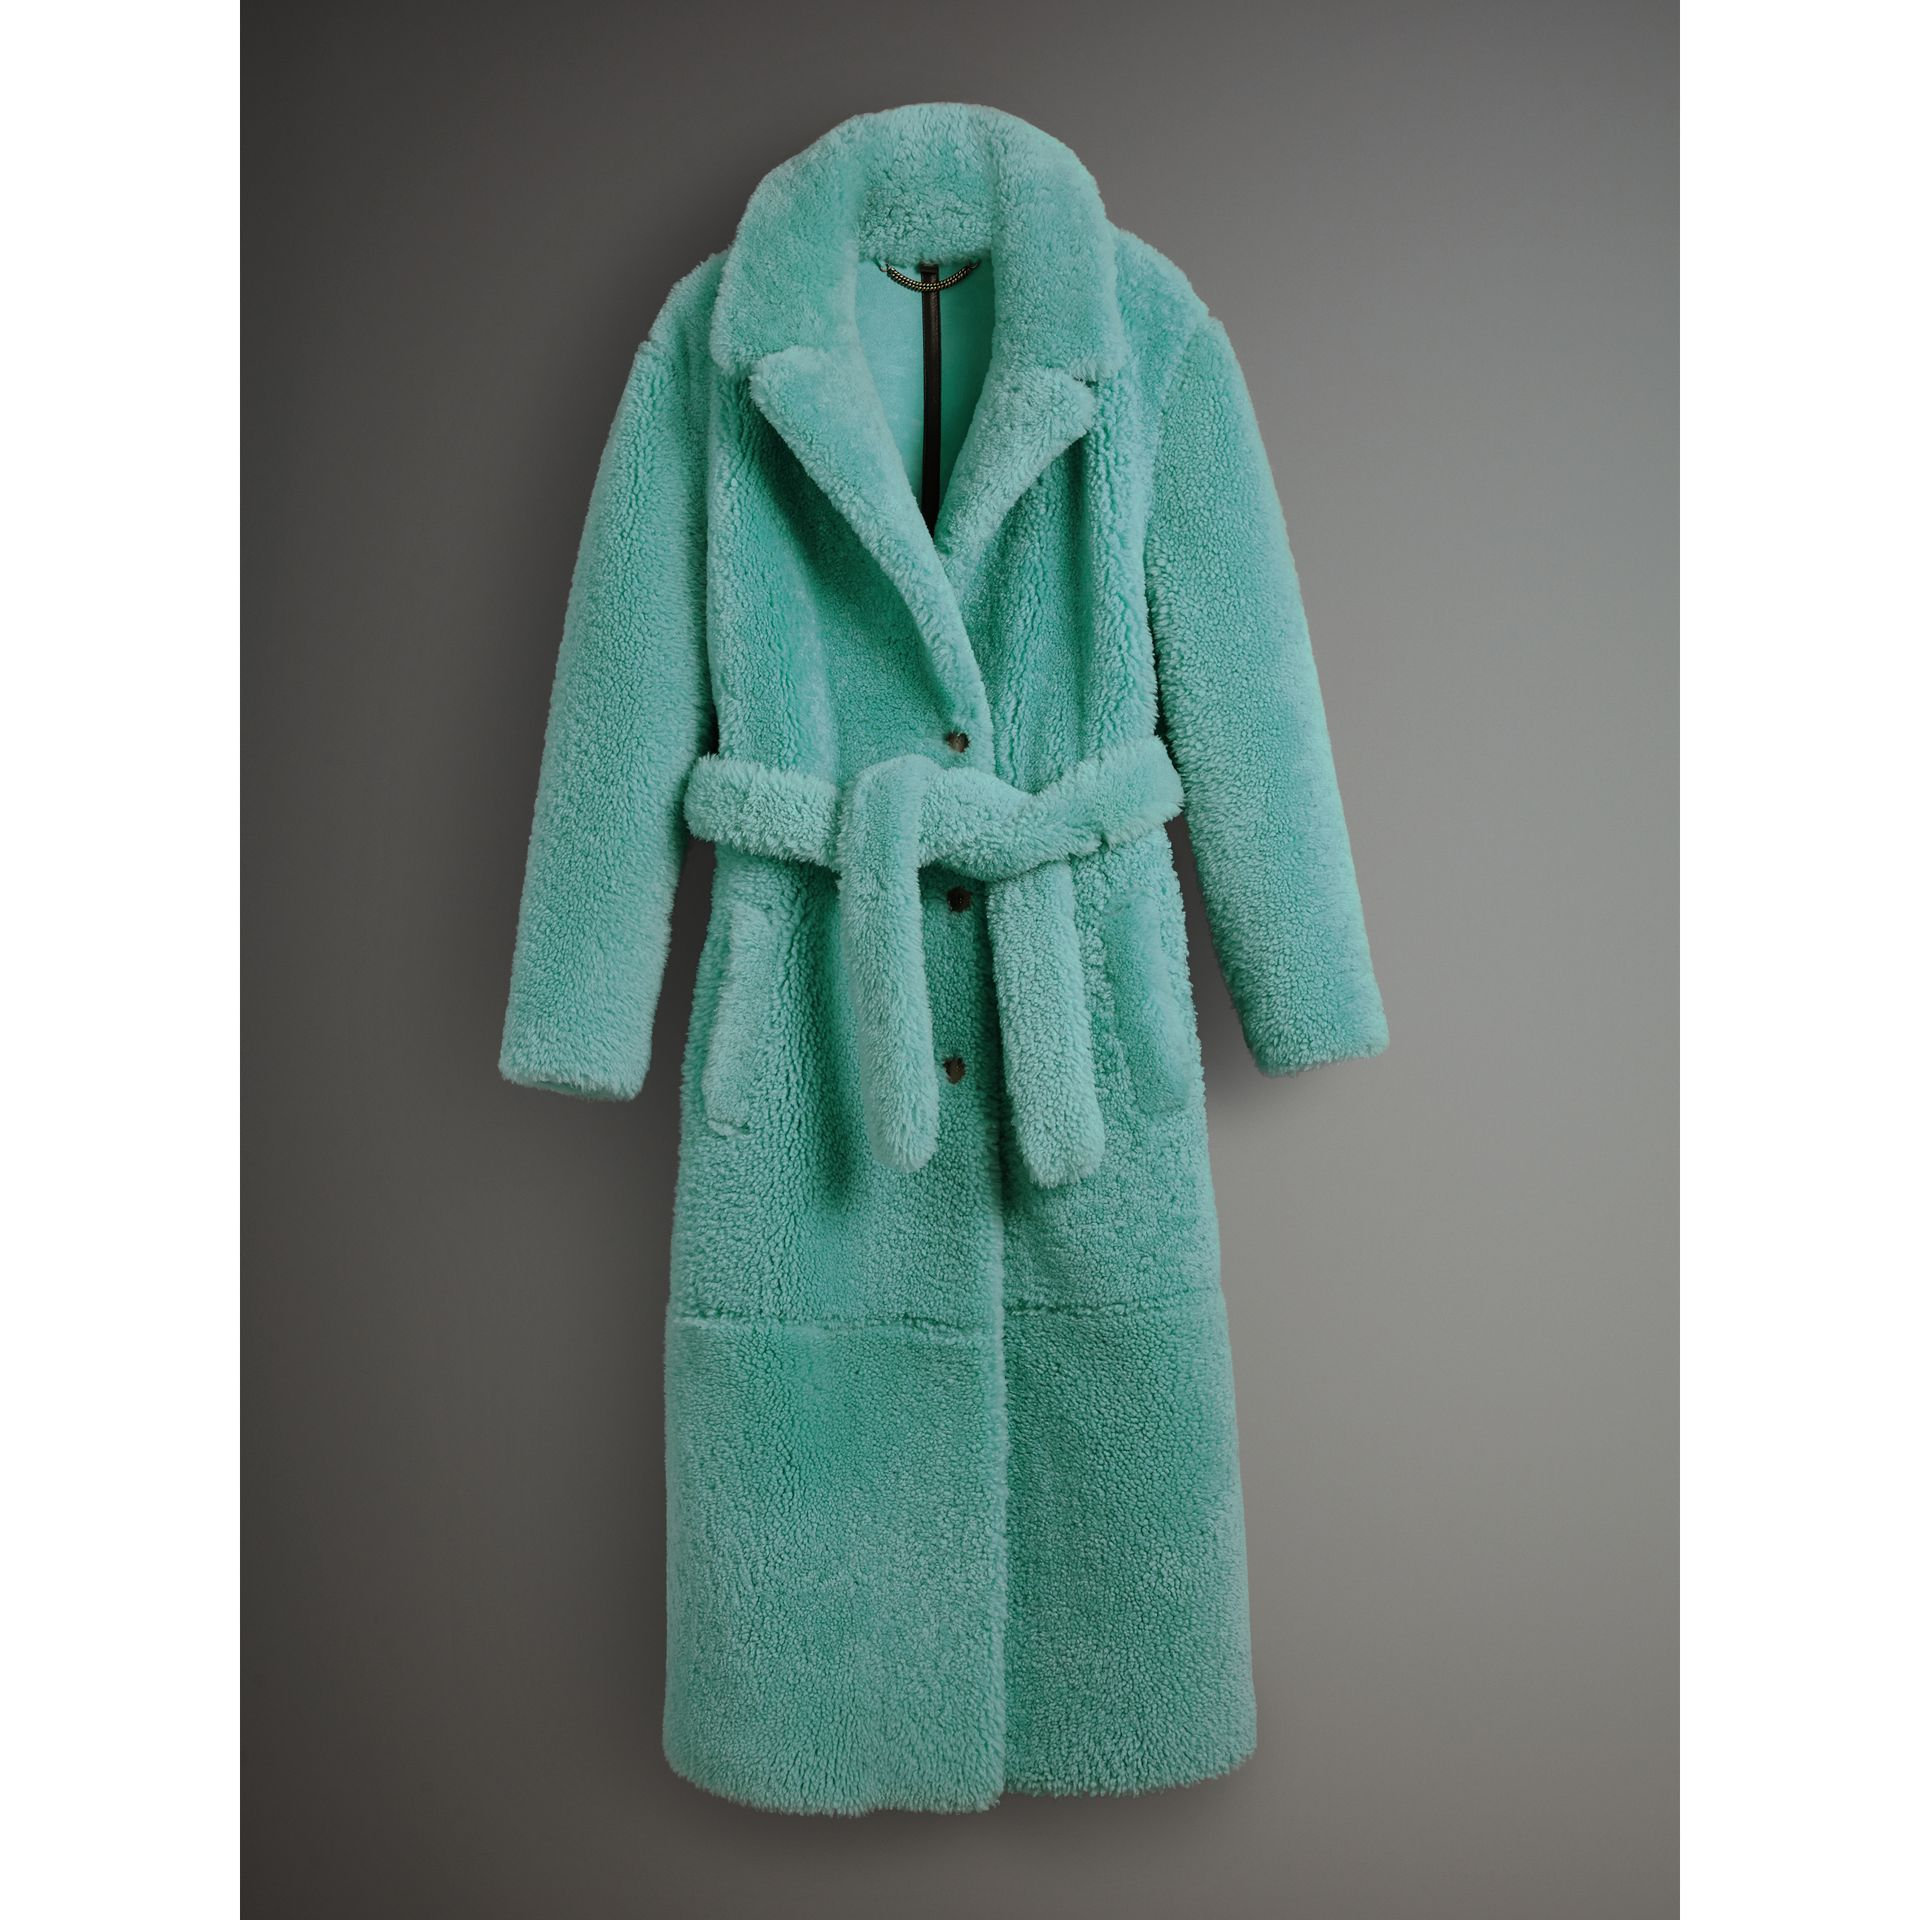 Shearling Oversized Coat in Turquoise - Women | Burberry - gallery image 3